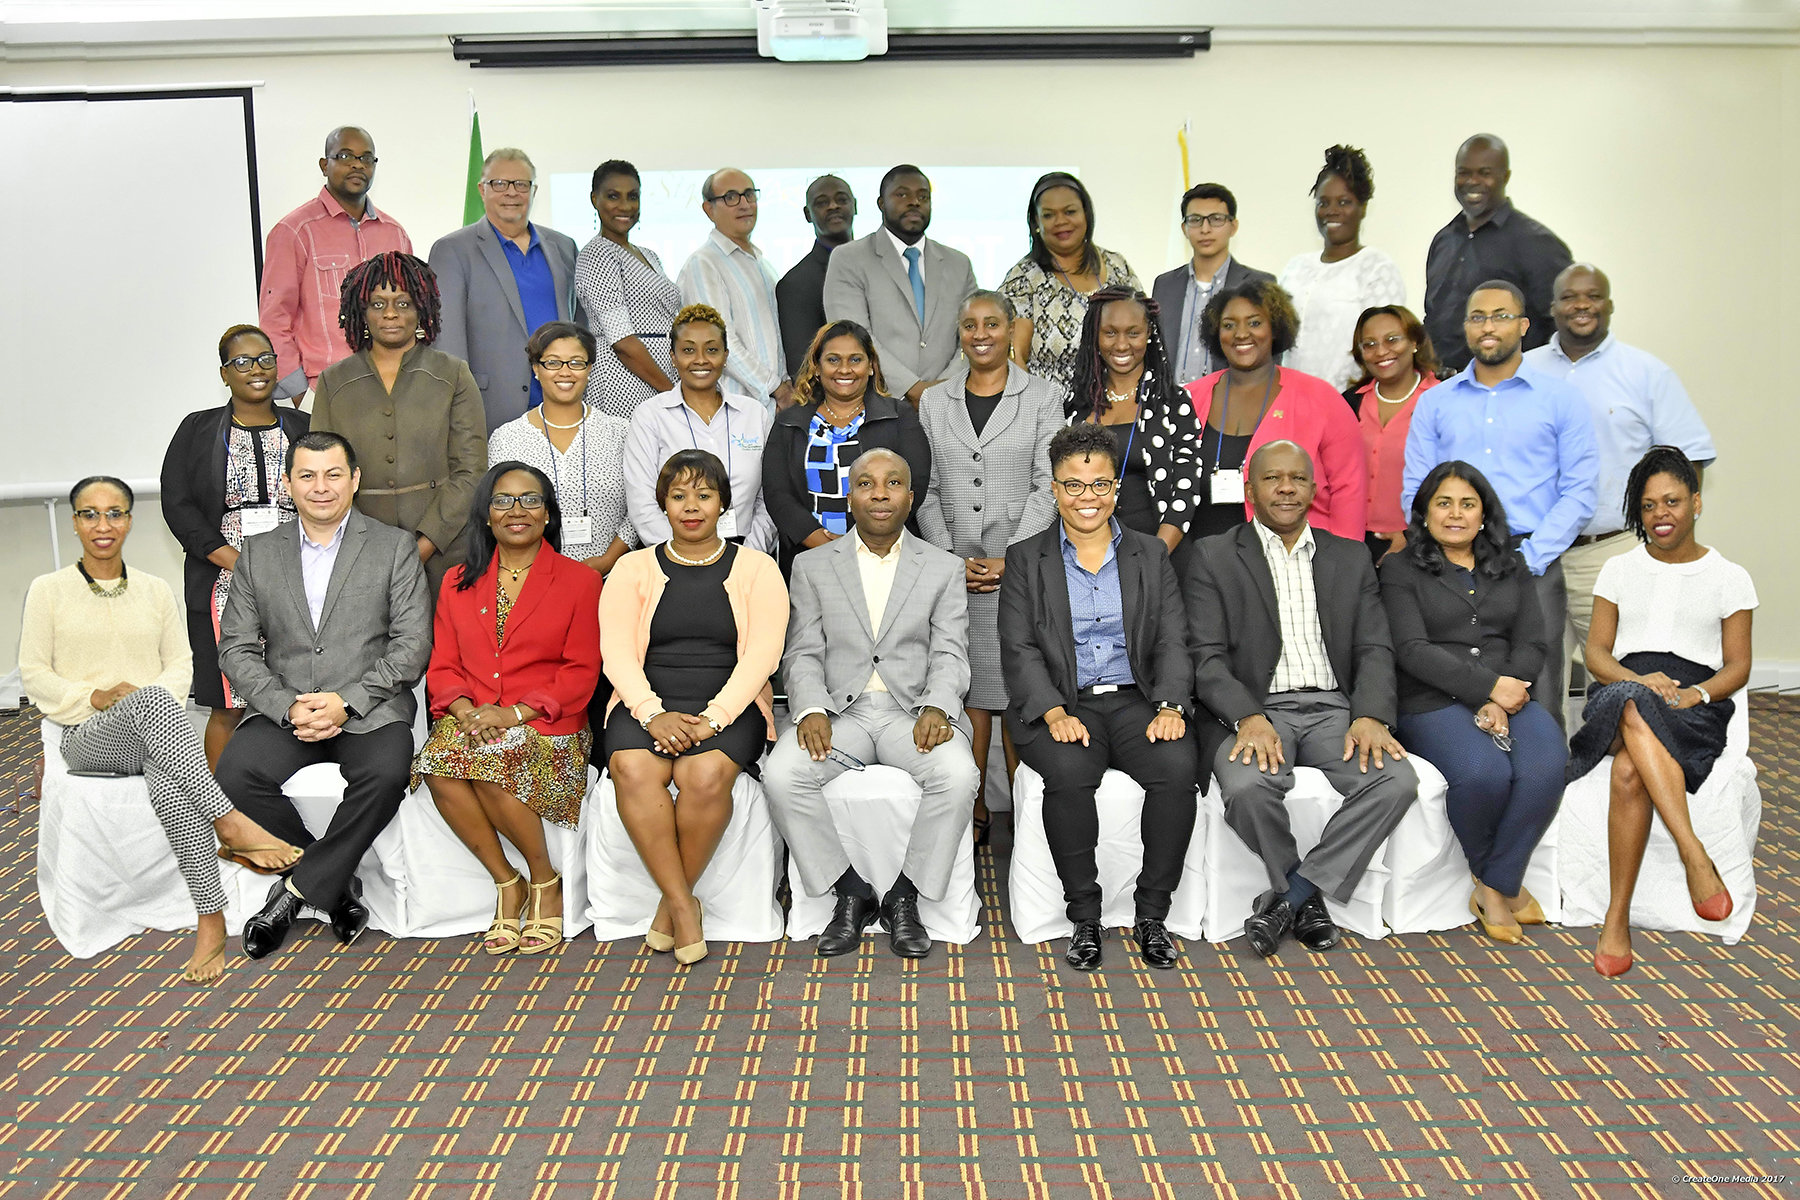 The Forum brought together local, regional, and international representatives from public and private sector tourism entities, as well as development agencies.